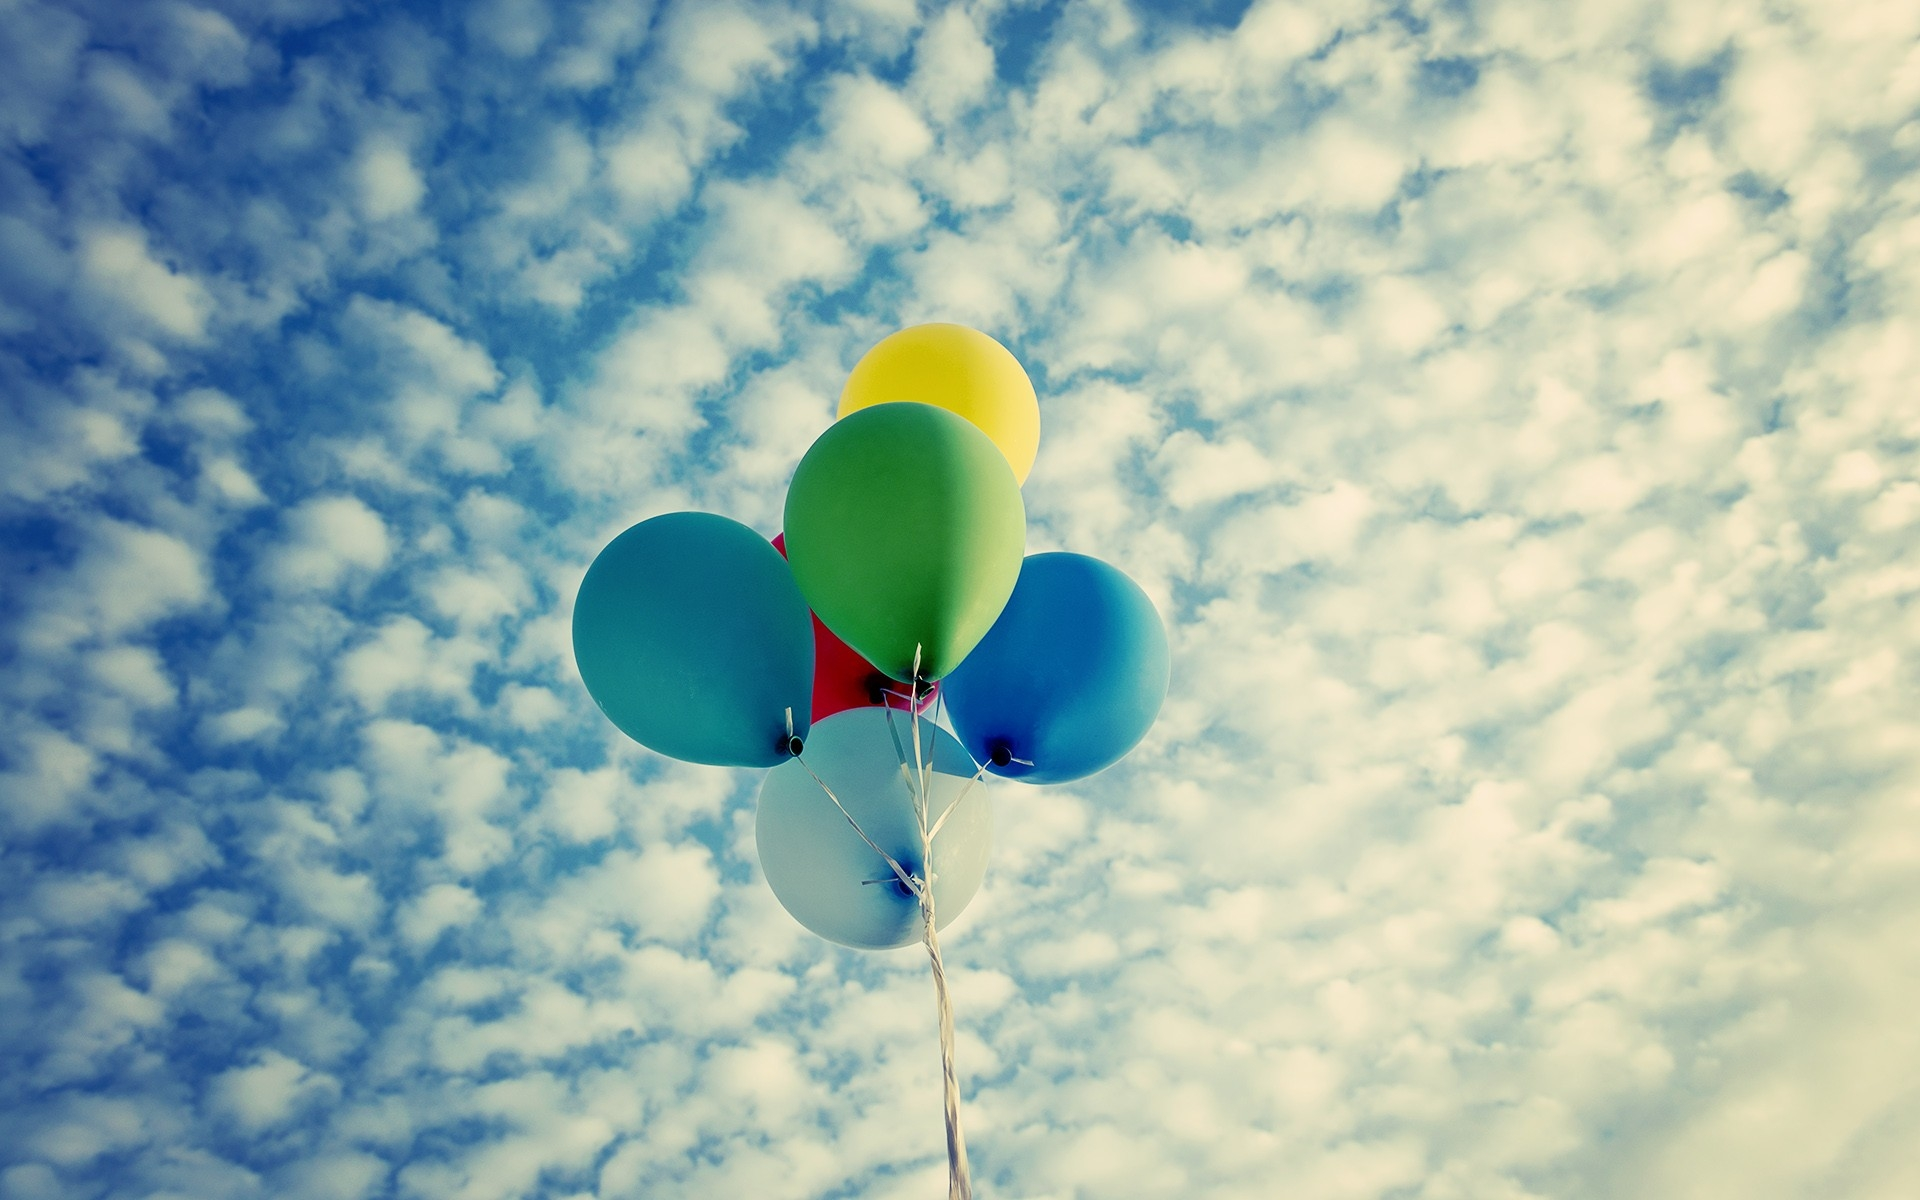 Sky Clouds Balloons 1920x1200